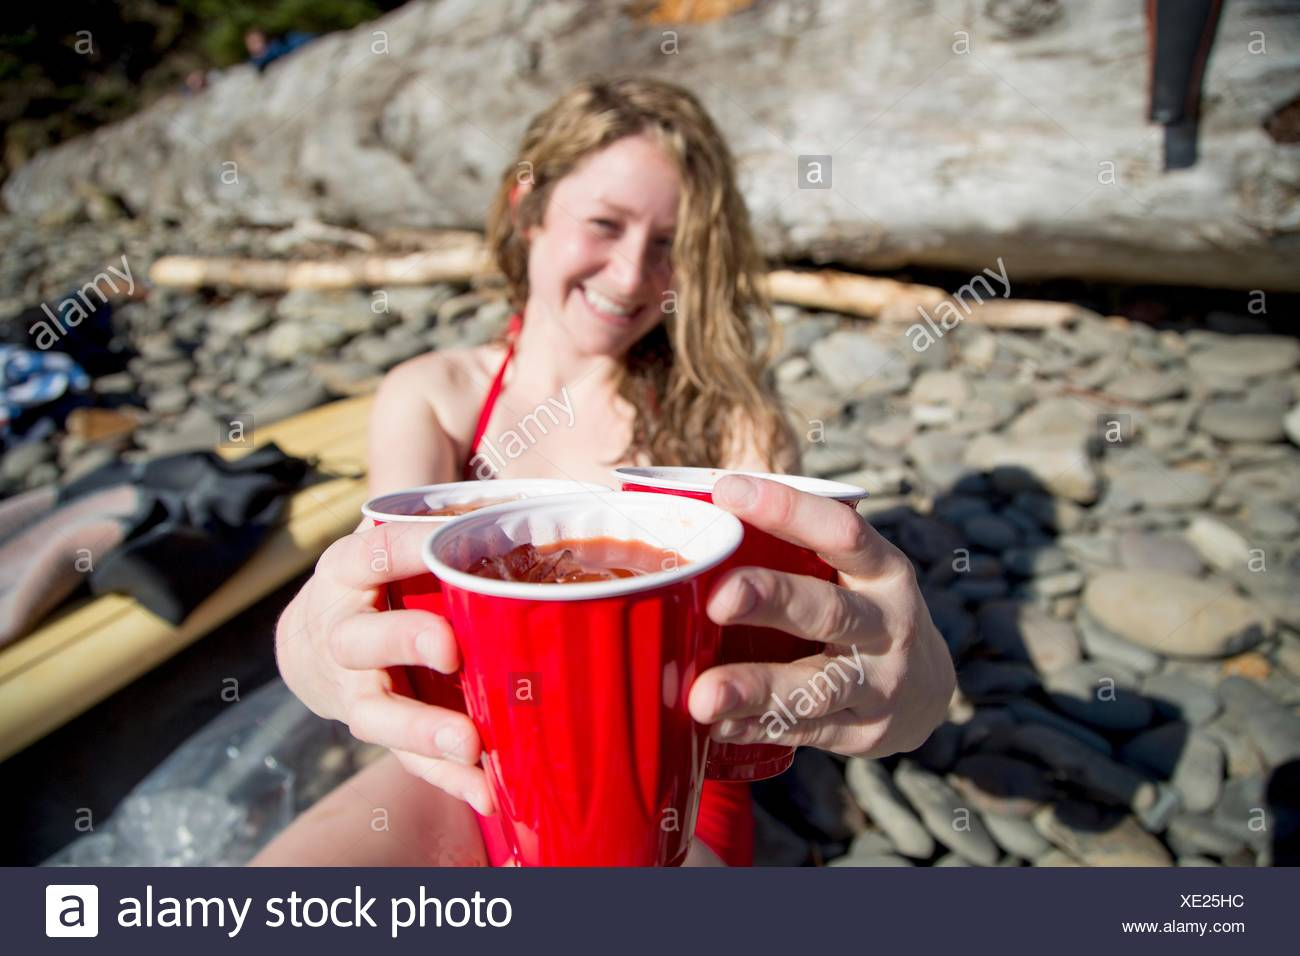 Young woman sitting on rocky beach, holding drinks, smiling, Short Sands Beach, Oregon, USA - Stock Image